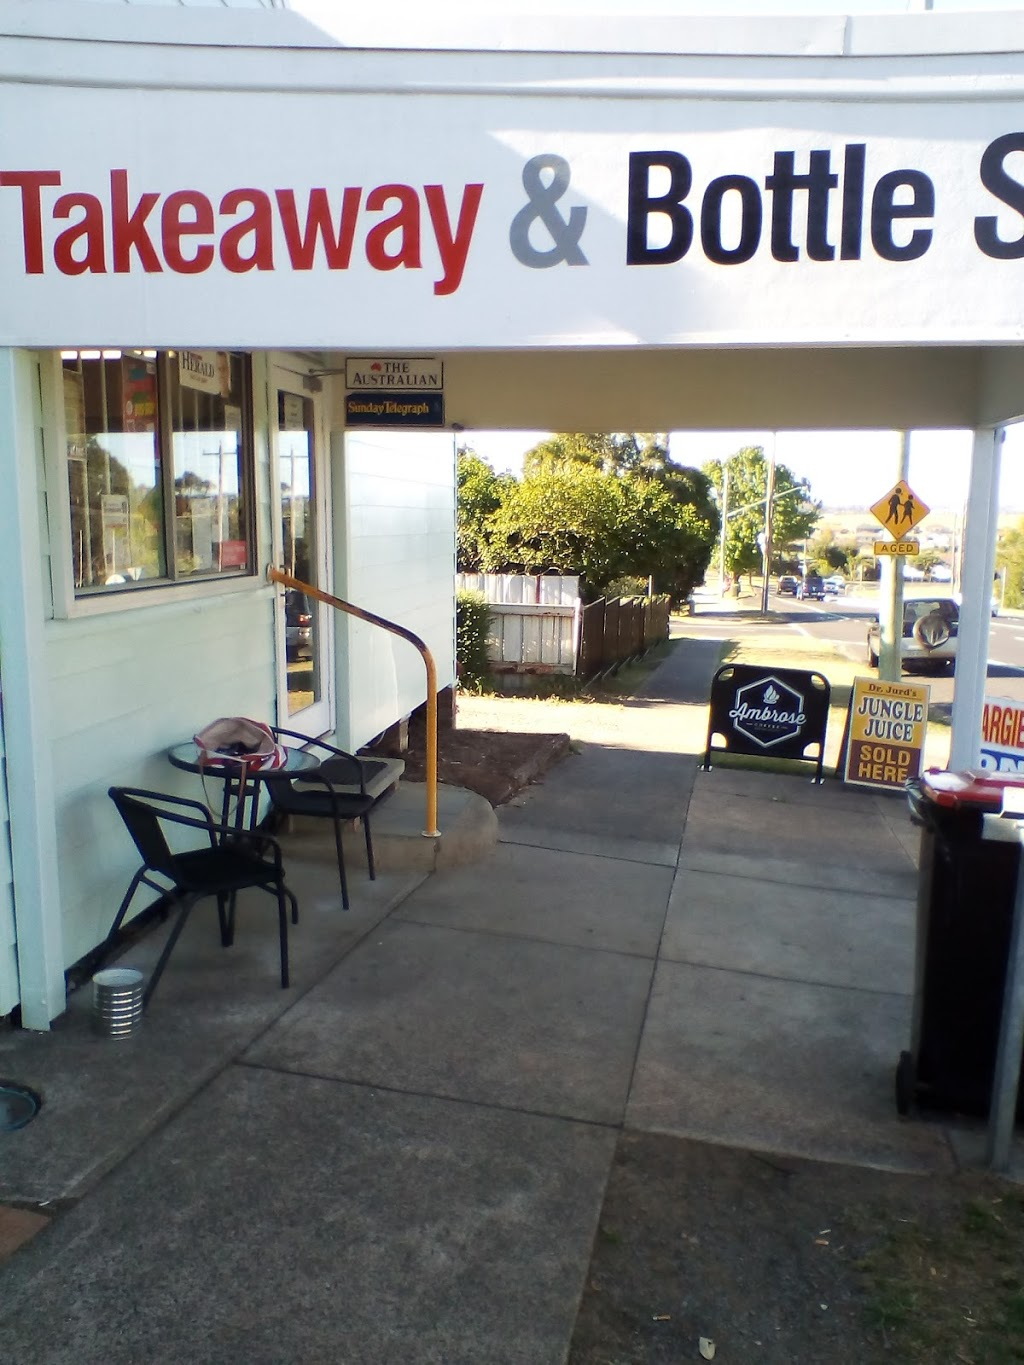 Gillieston Heights General Store & Bottle Shop | store | 13 Cessnock Rd, Gillieston Heights NSW 2321, Australia | 0249328550 OR +61 2 4932 8550